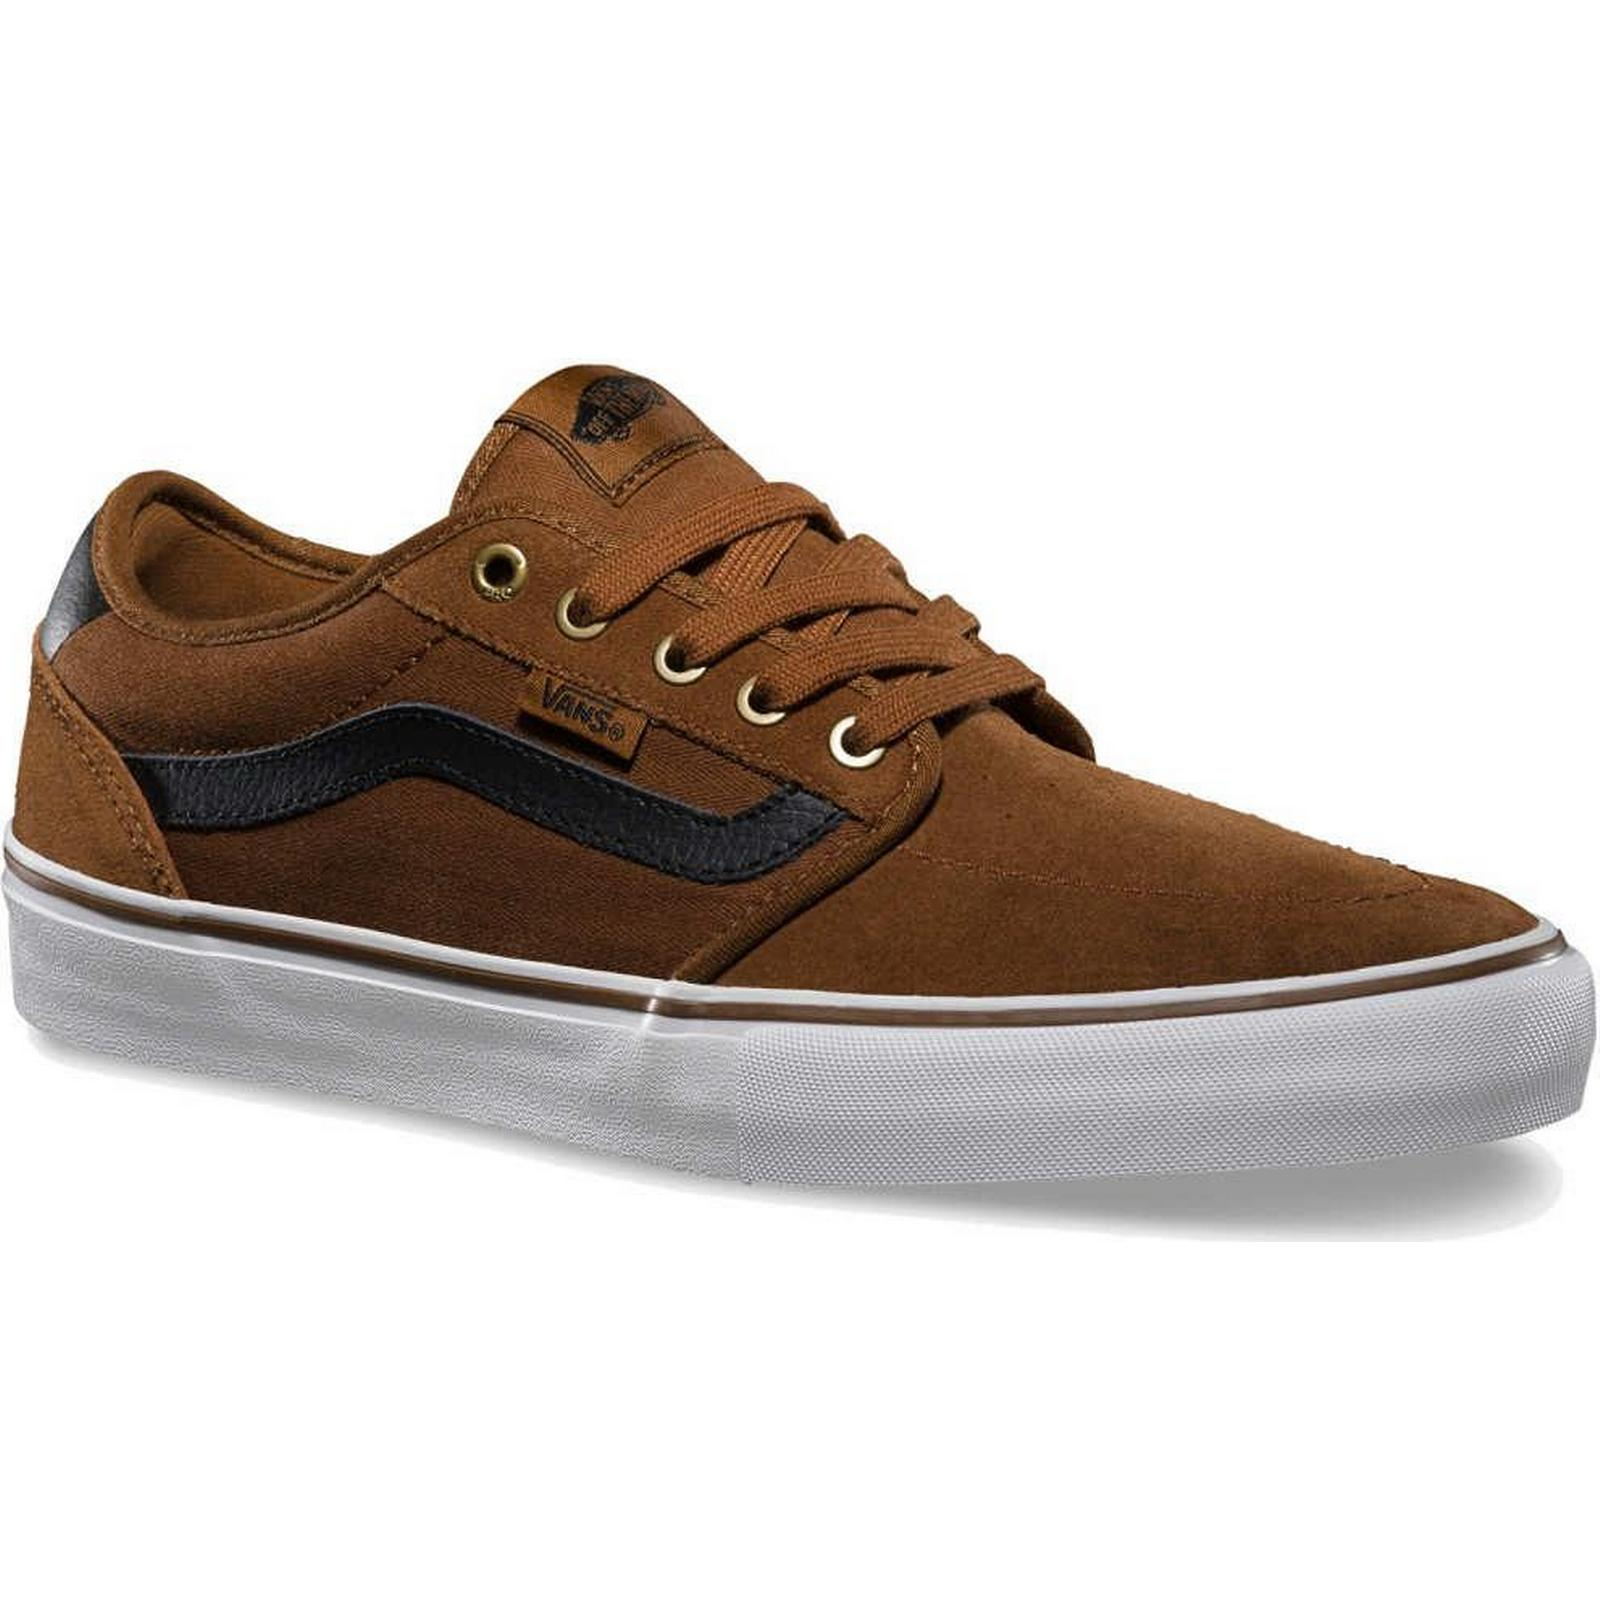 moins mme 10898b m lindero patiner chaussures cher 2 qHKd8Xdgw